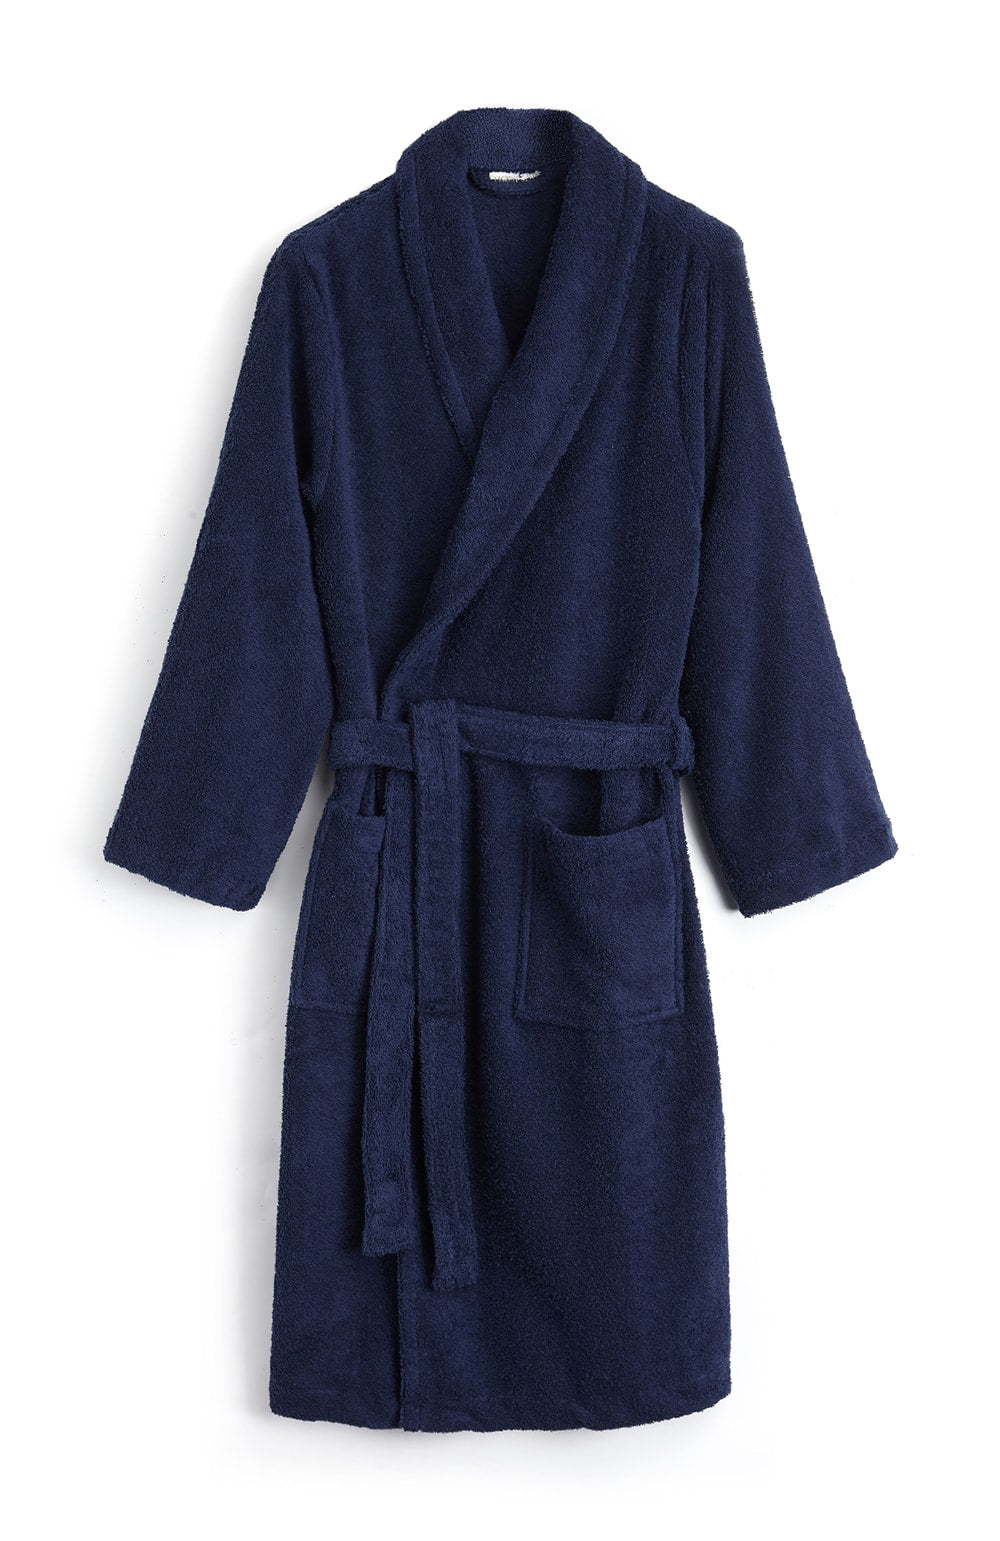 Unisex Towelling Robe. (scbr) - Midnight